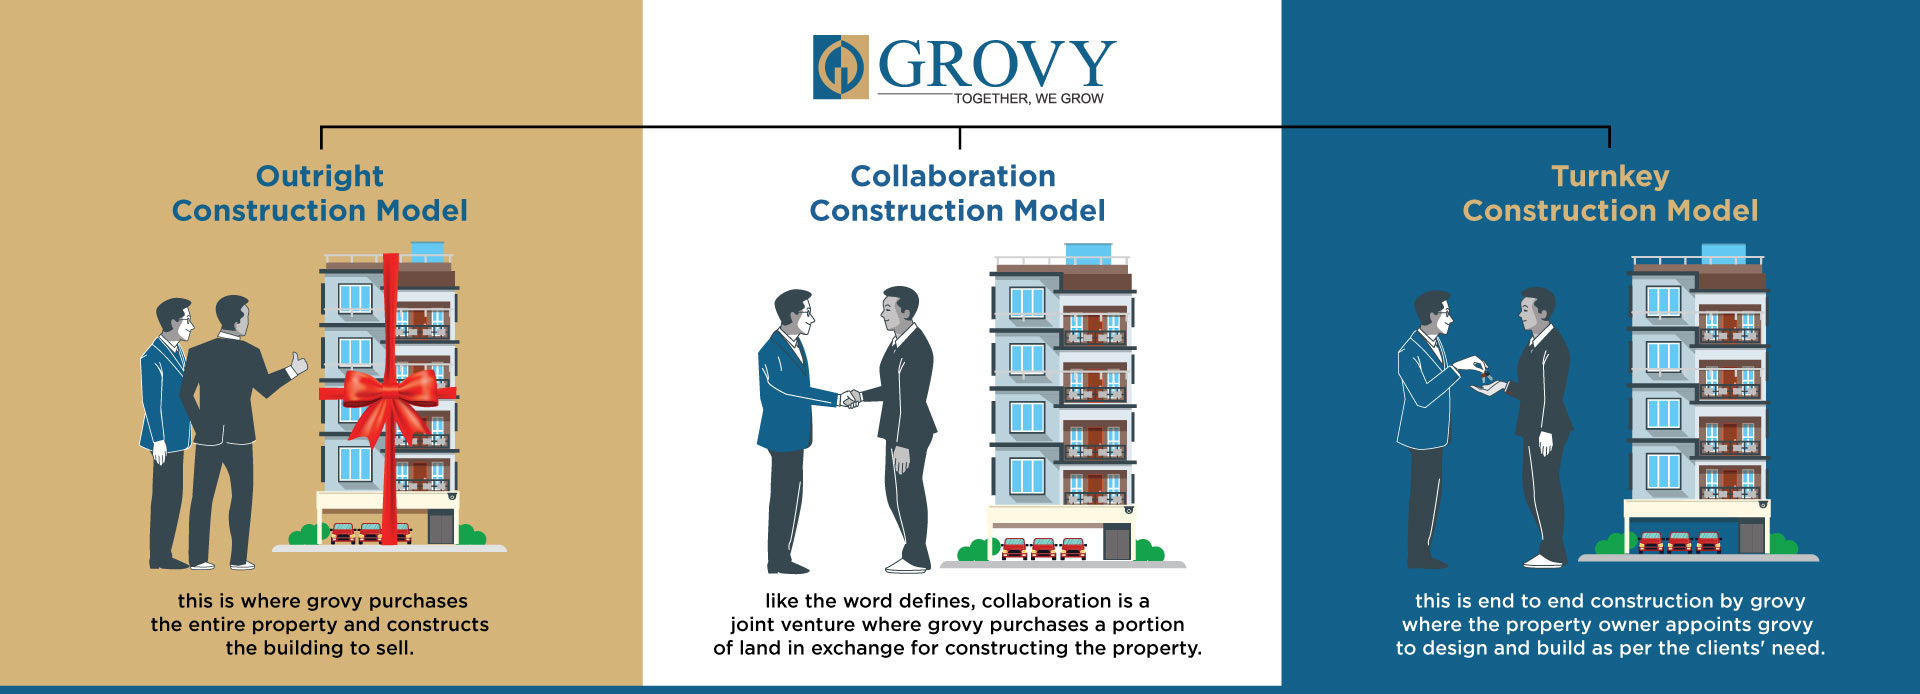 Grovy construction model